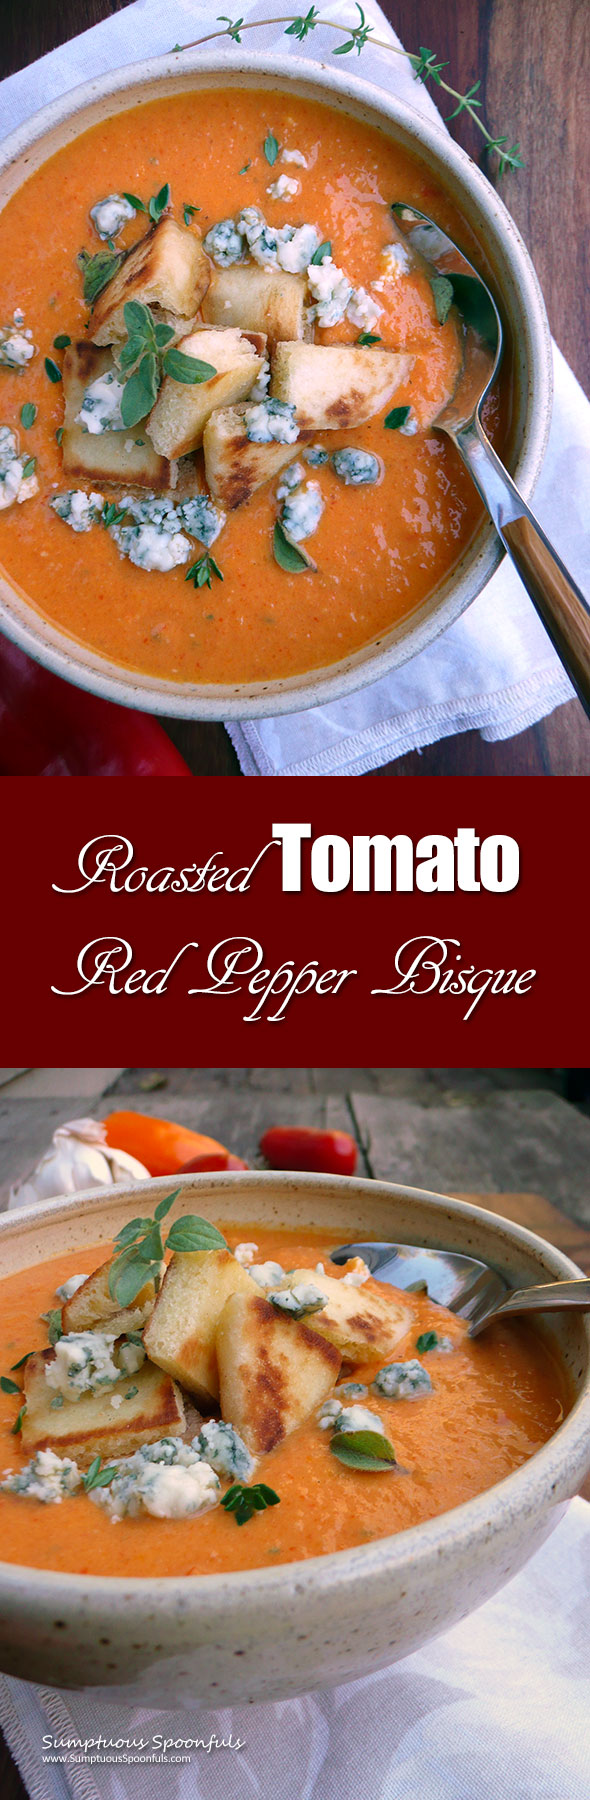 Roasted Tomato Red Pepper Bisque ~ Sumptuous Spoonfuls #tomato #redpepper #soup #recipe